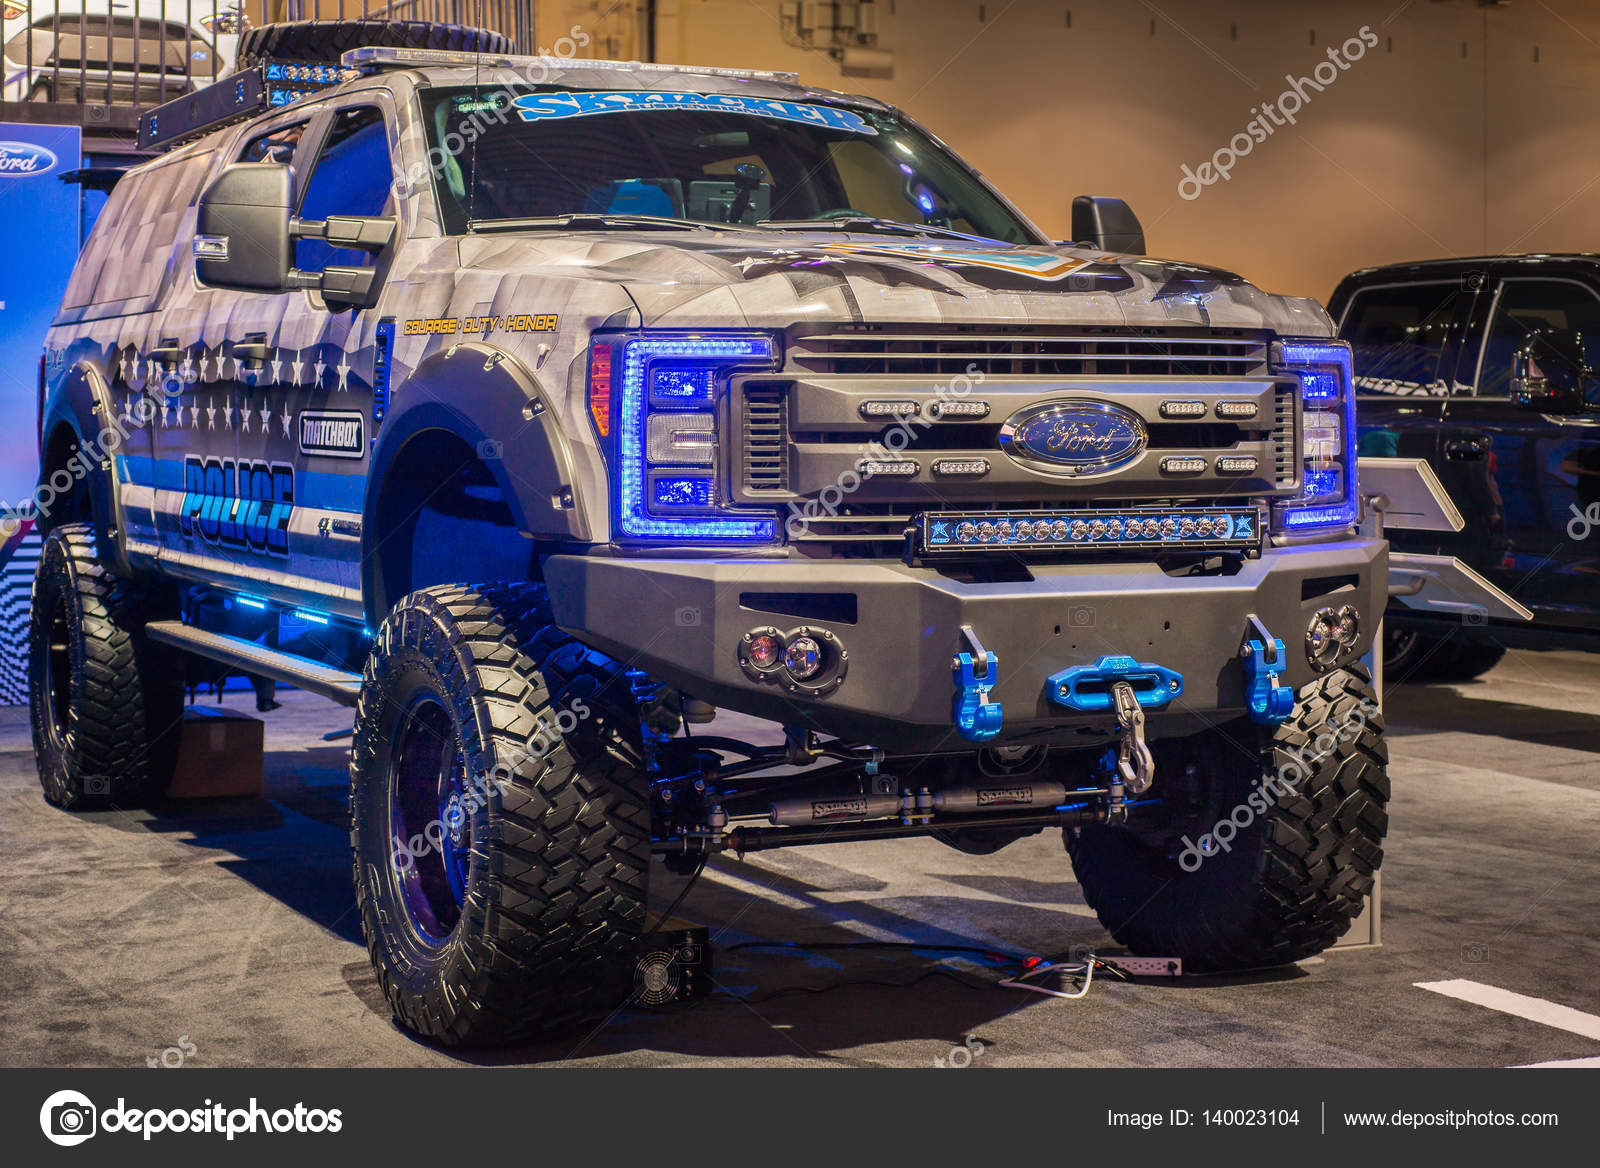 Matchbox Police themed truck, 2017 Ford F-350 Super Duty ...